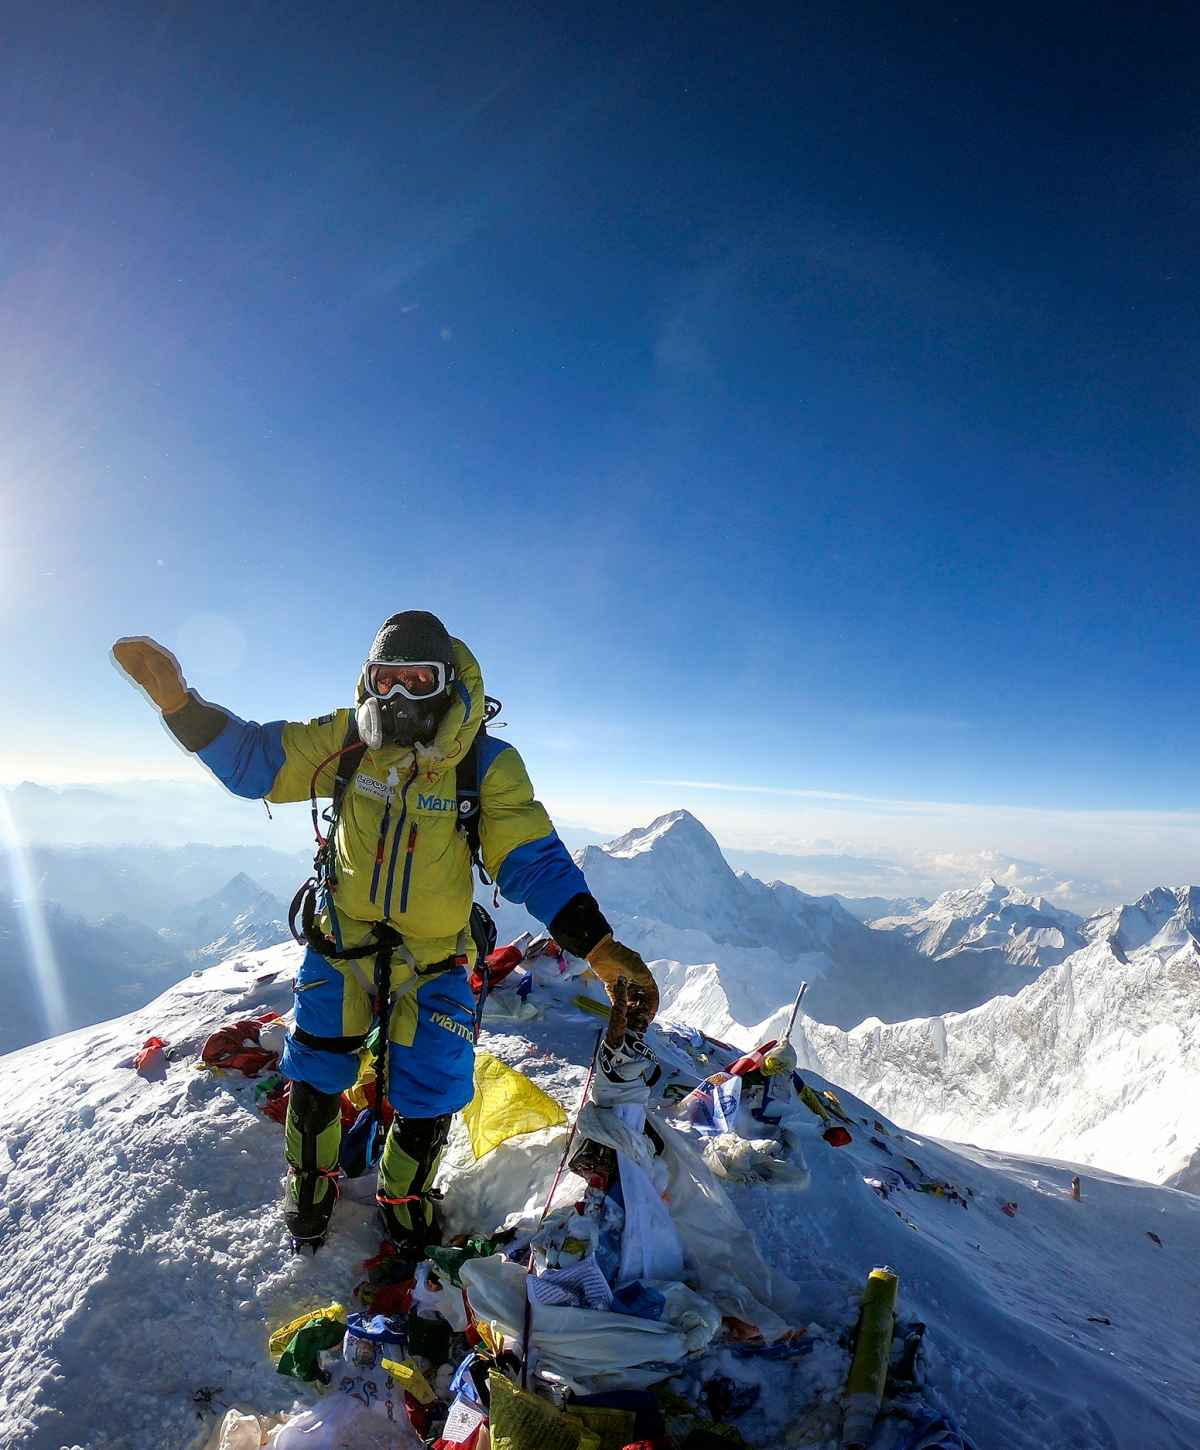 Luis Stitzinger op de top van de Mount Everest